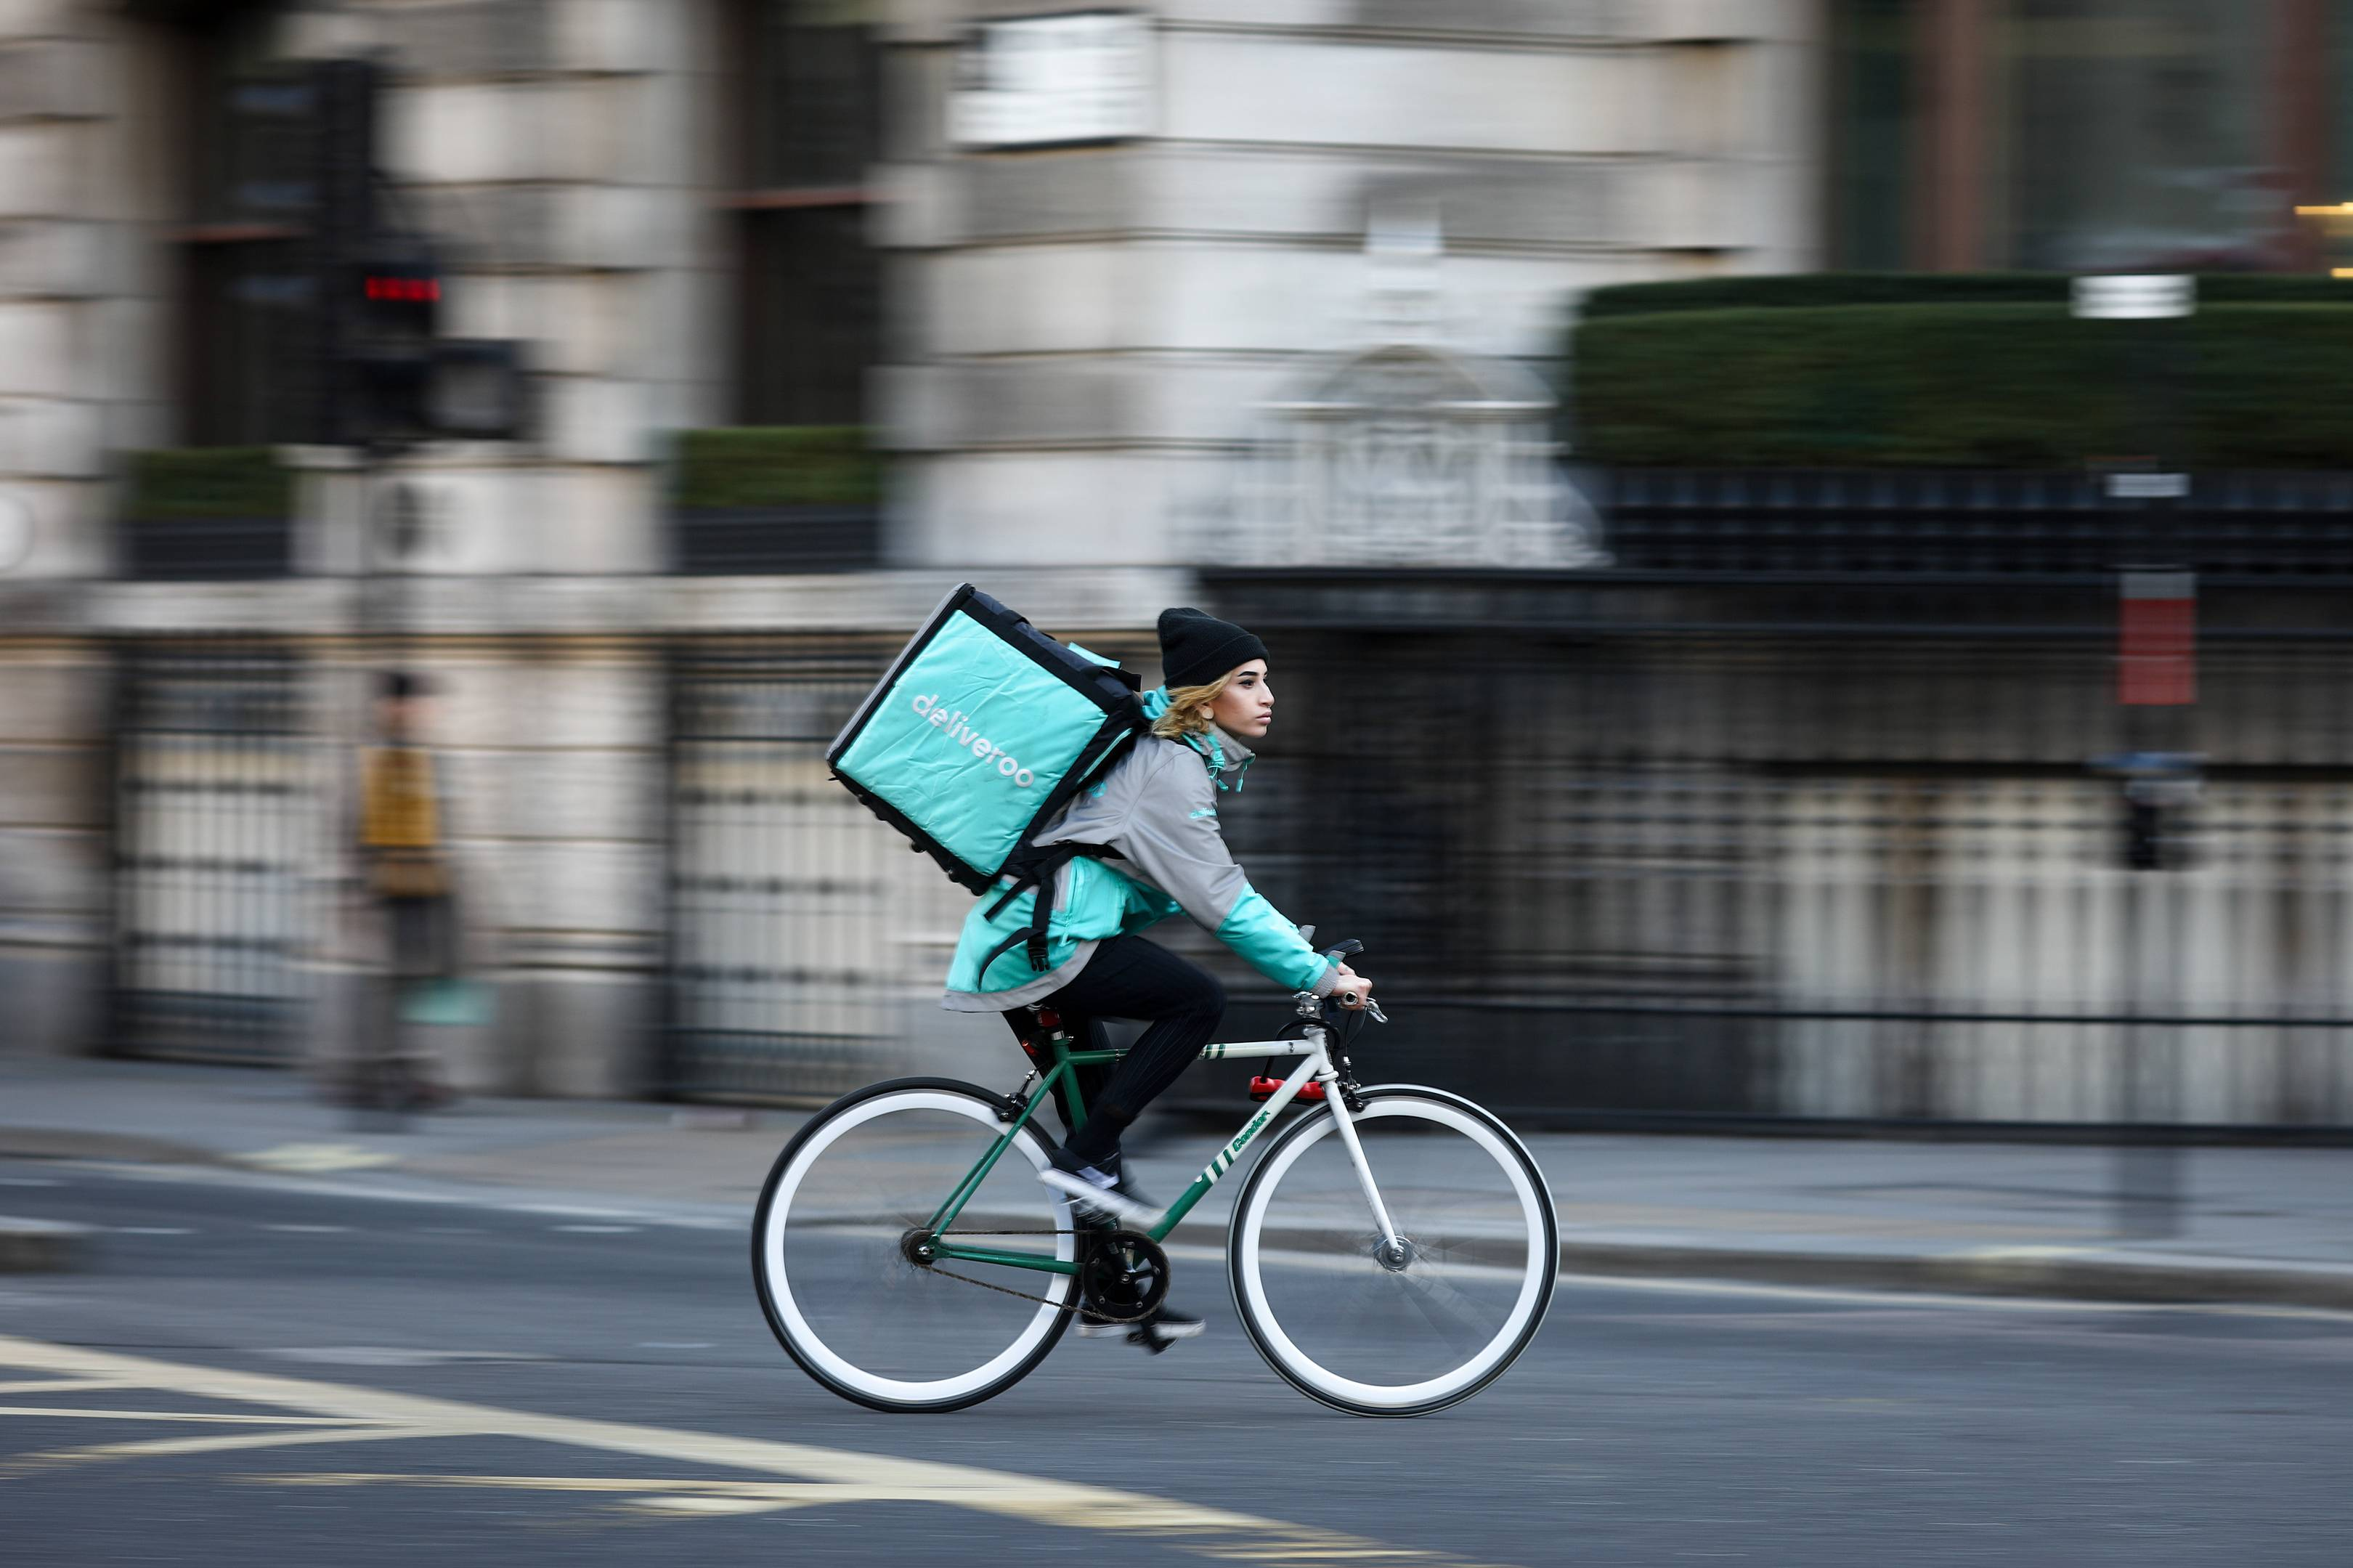 Deliveroo customers keep getting hacked using the same old